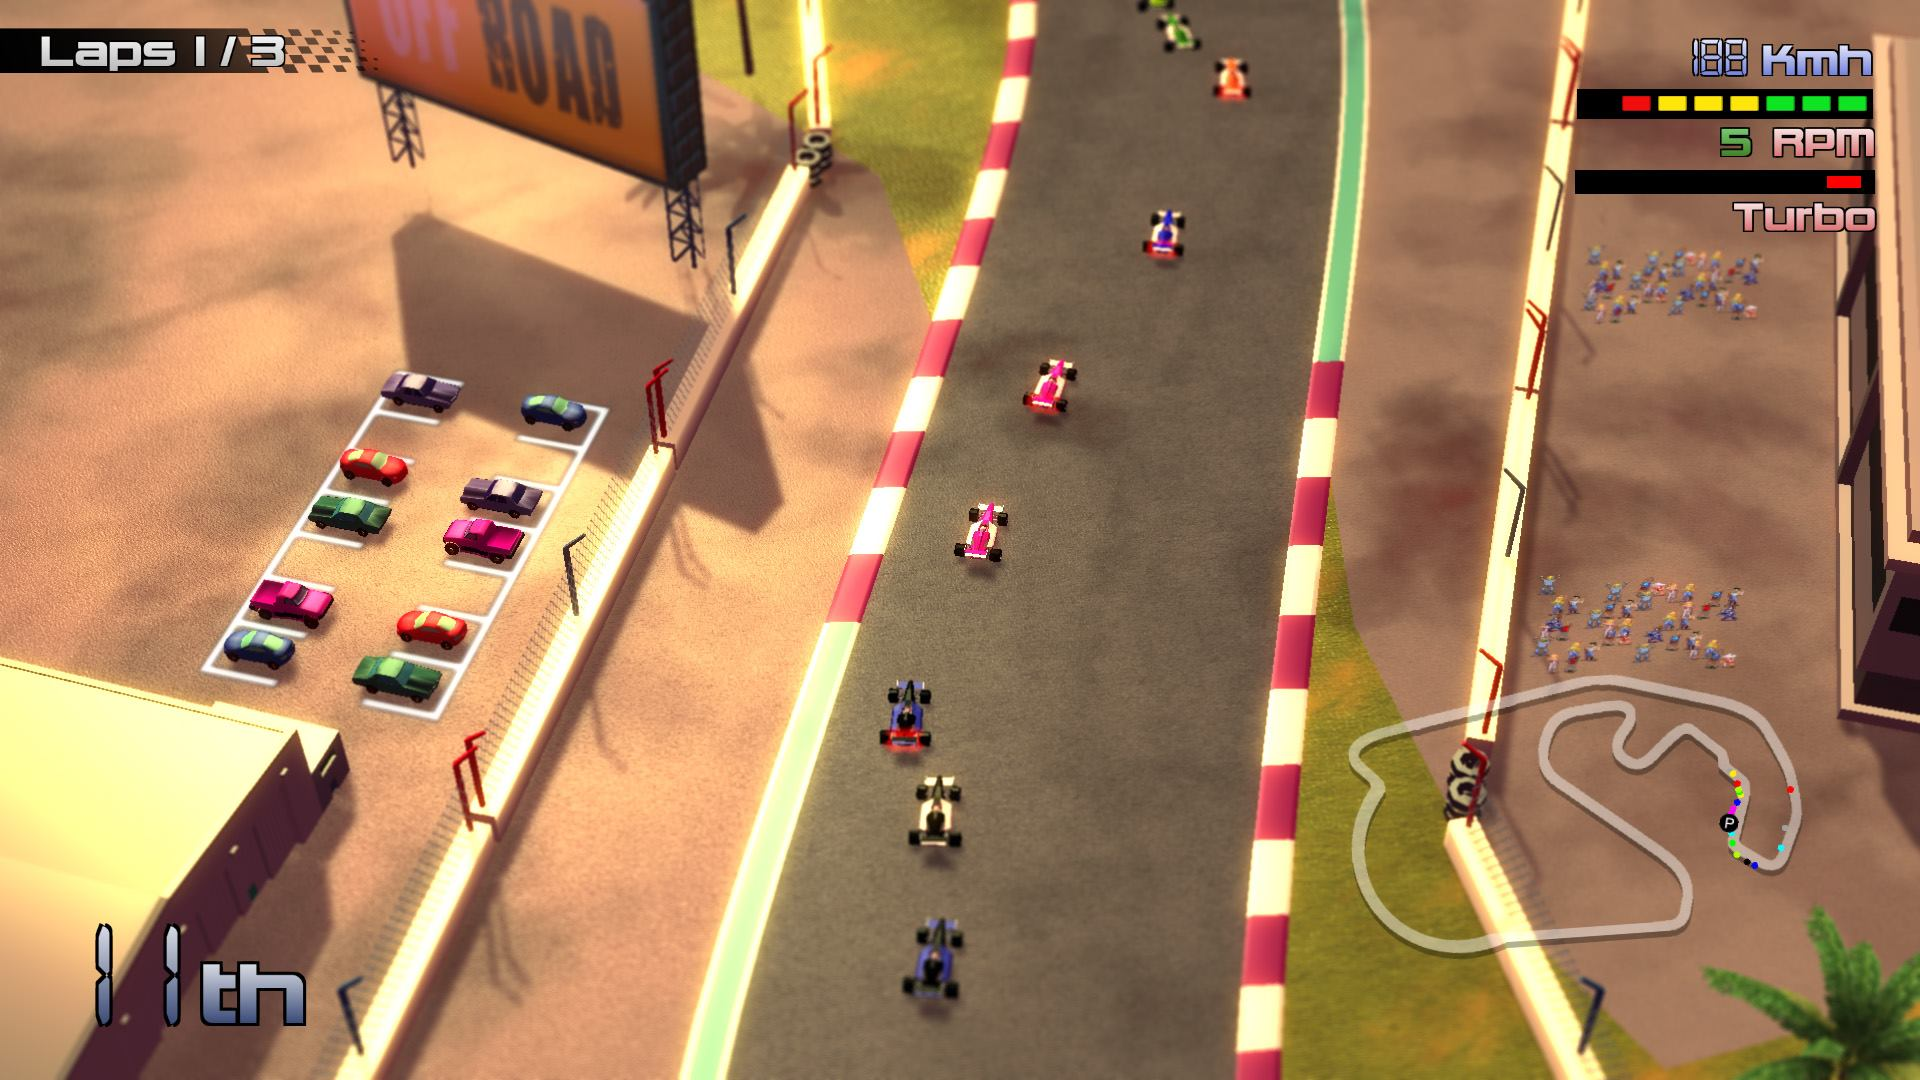 Grand Prix Rock 'N Racing release date and first footage revealed